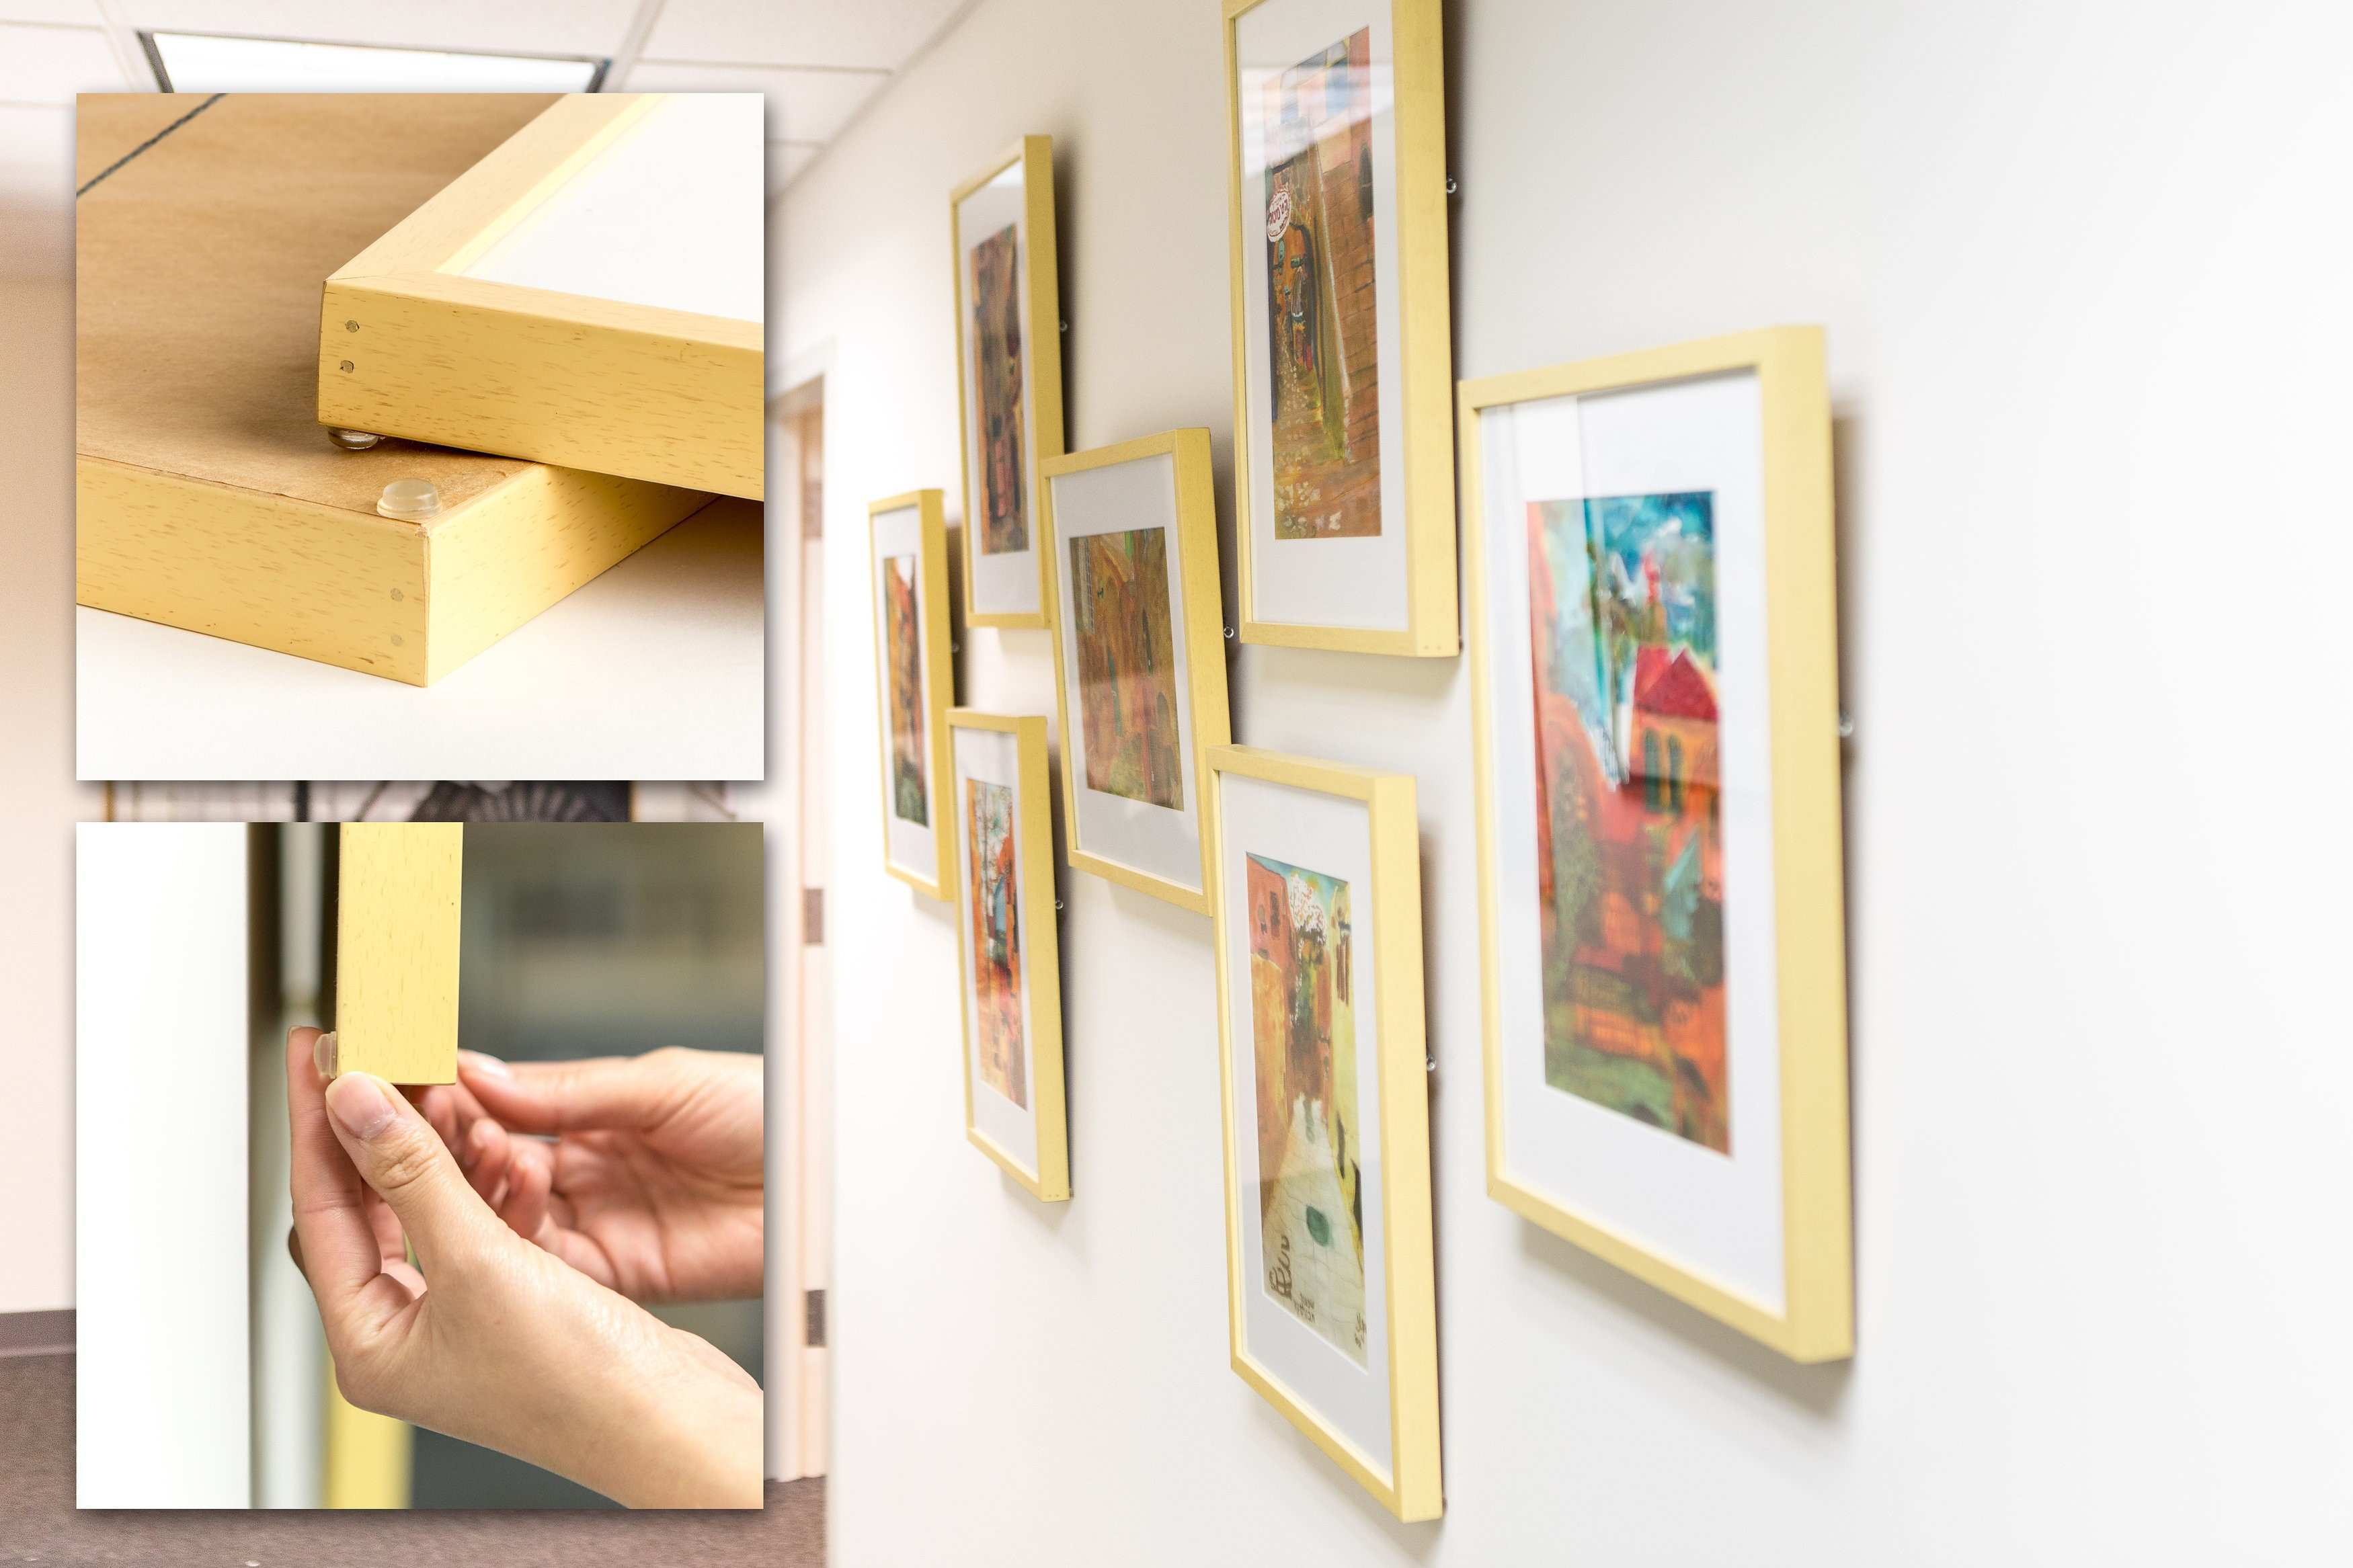 Bumper Pads The Hidden but Important Picture Frame Accessory